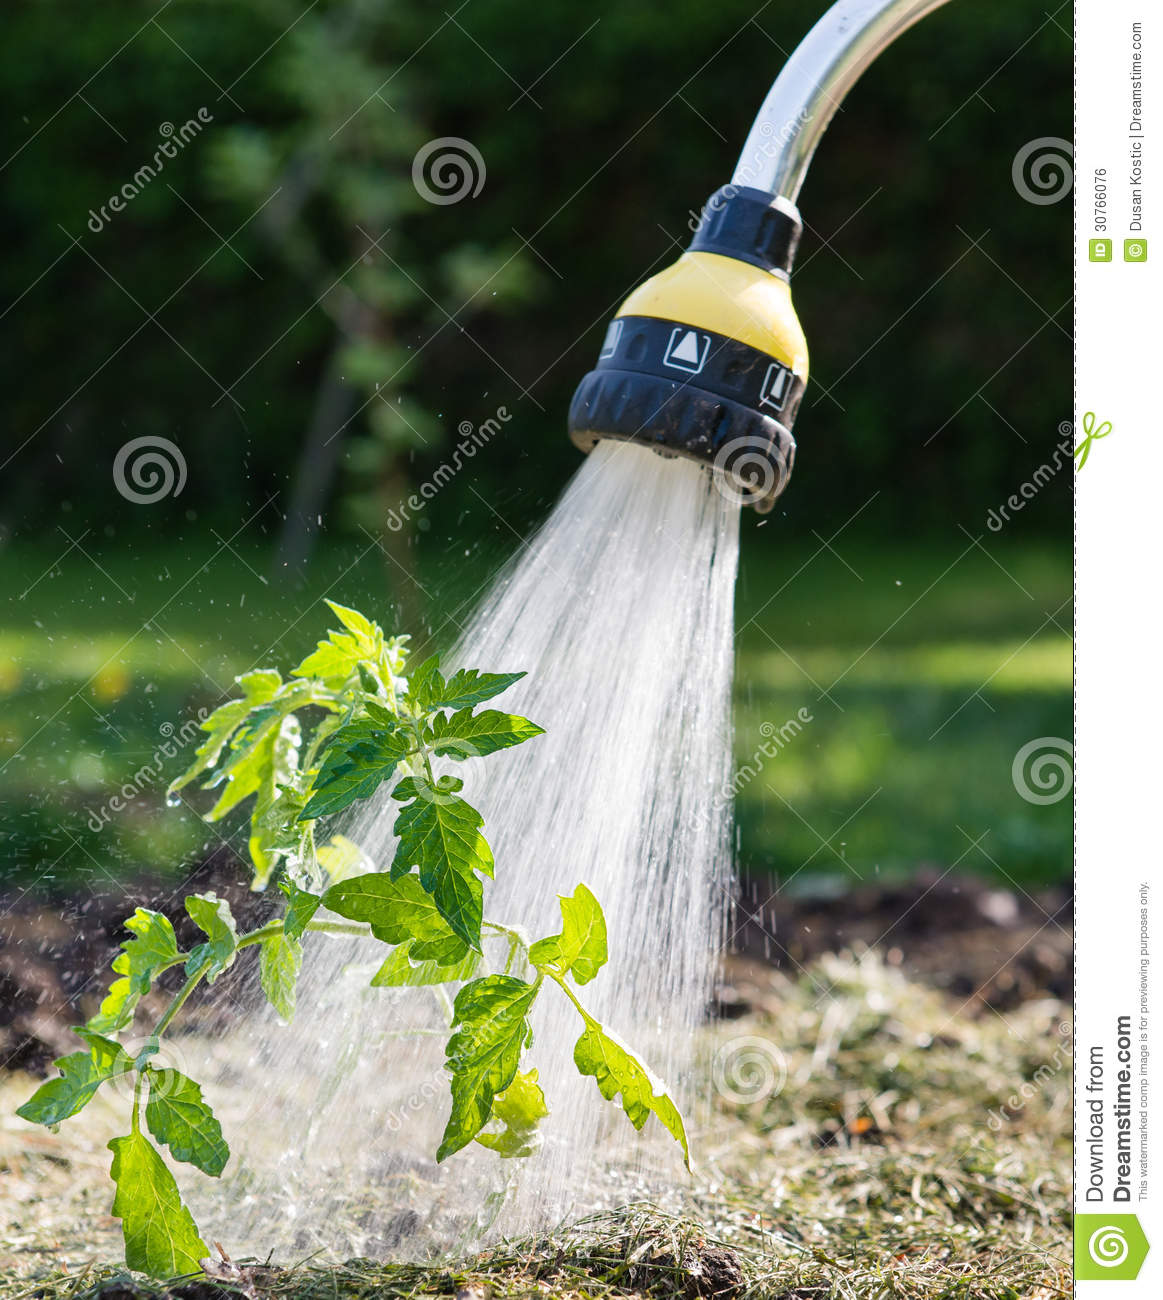 Watering seedling tomato stock photo image of water for Watering vegetable garden